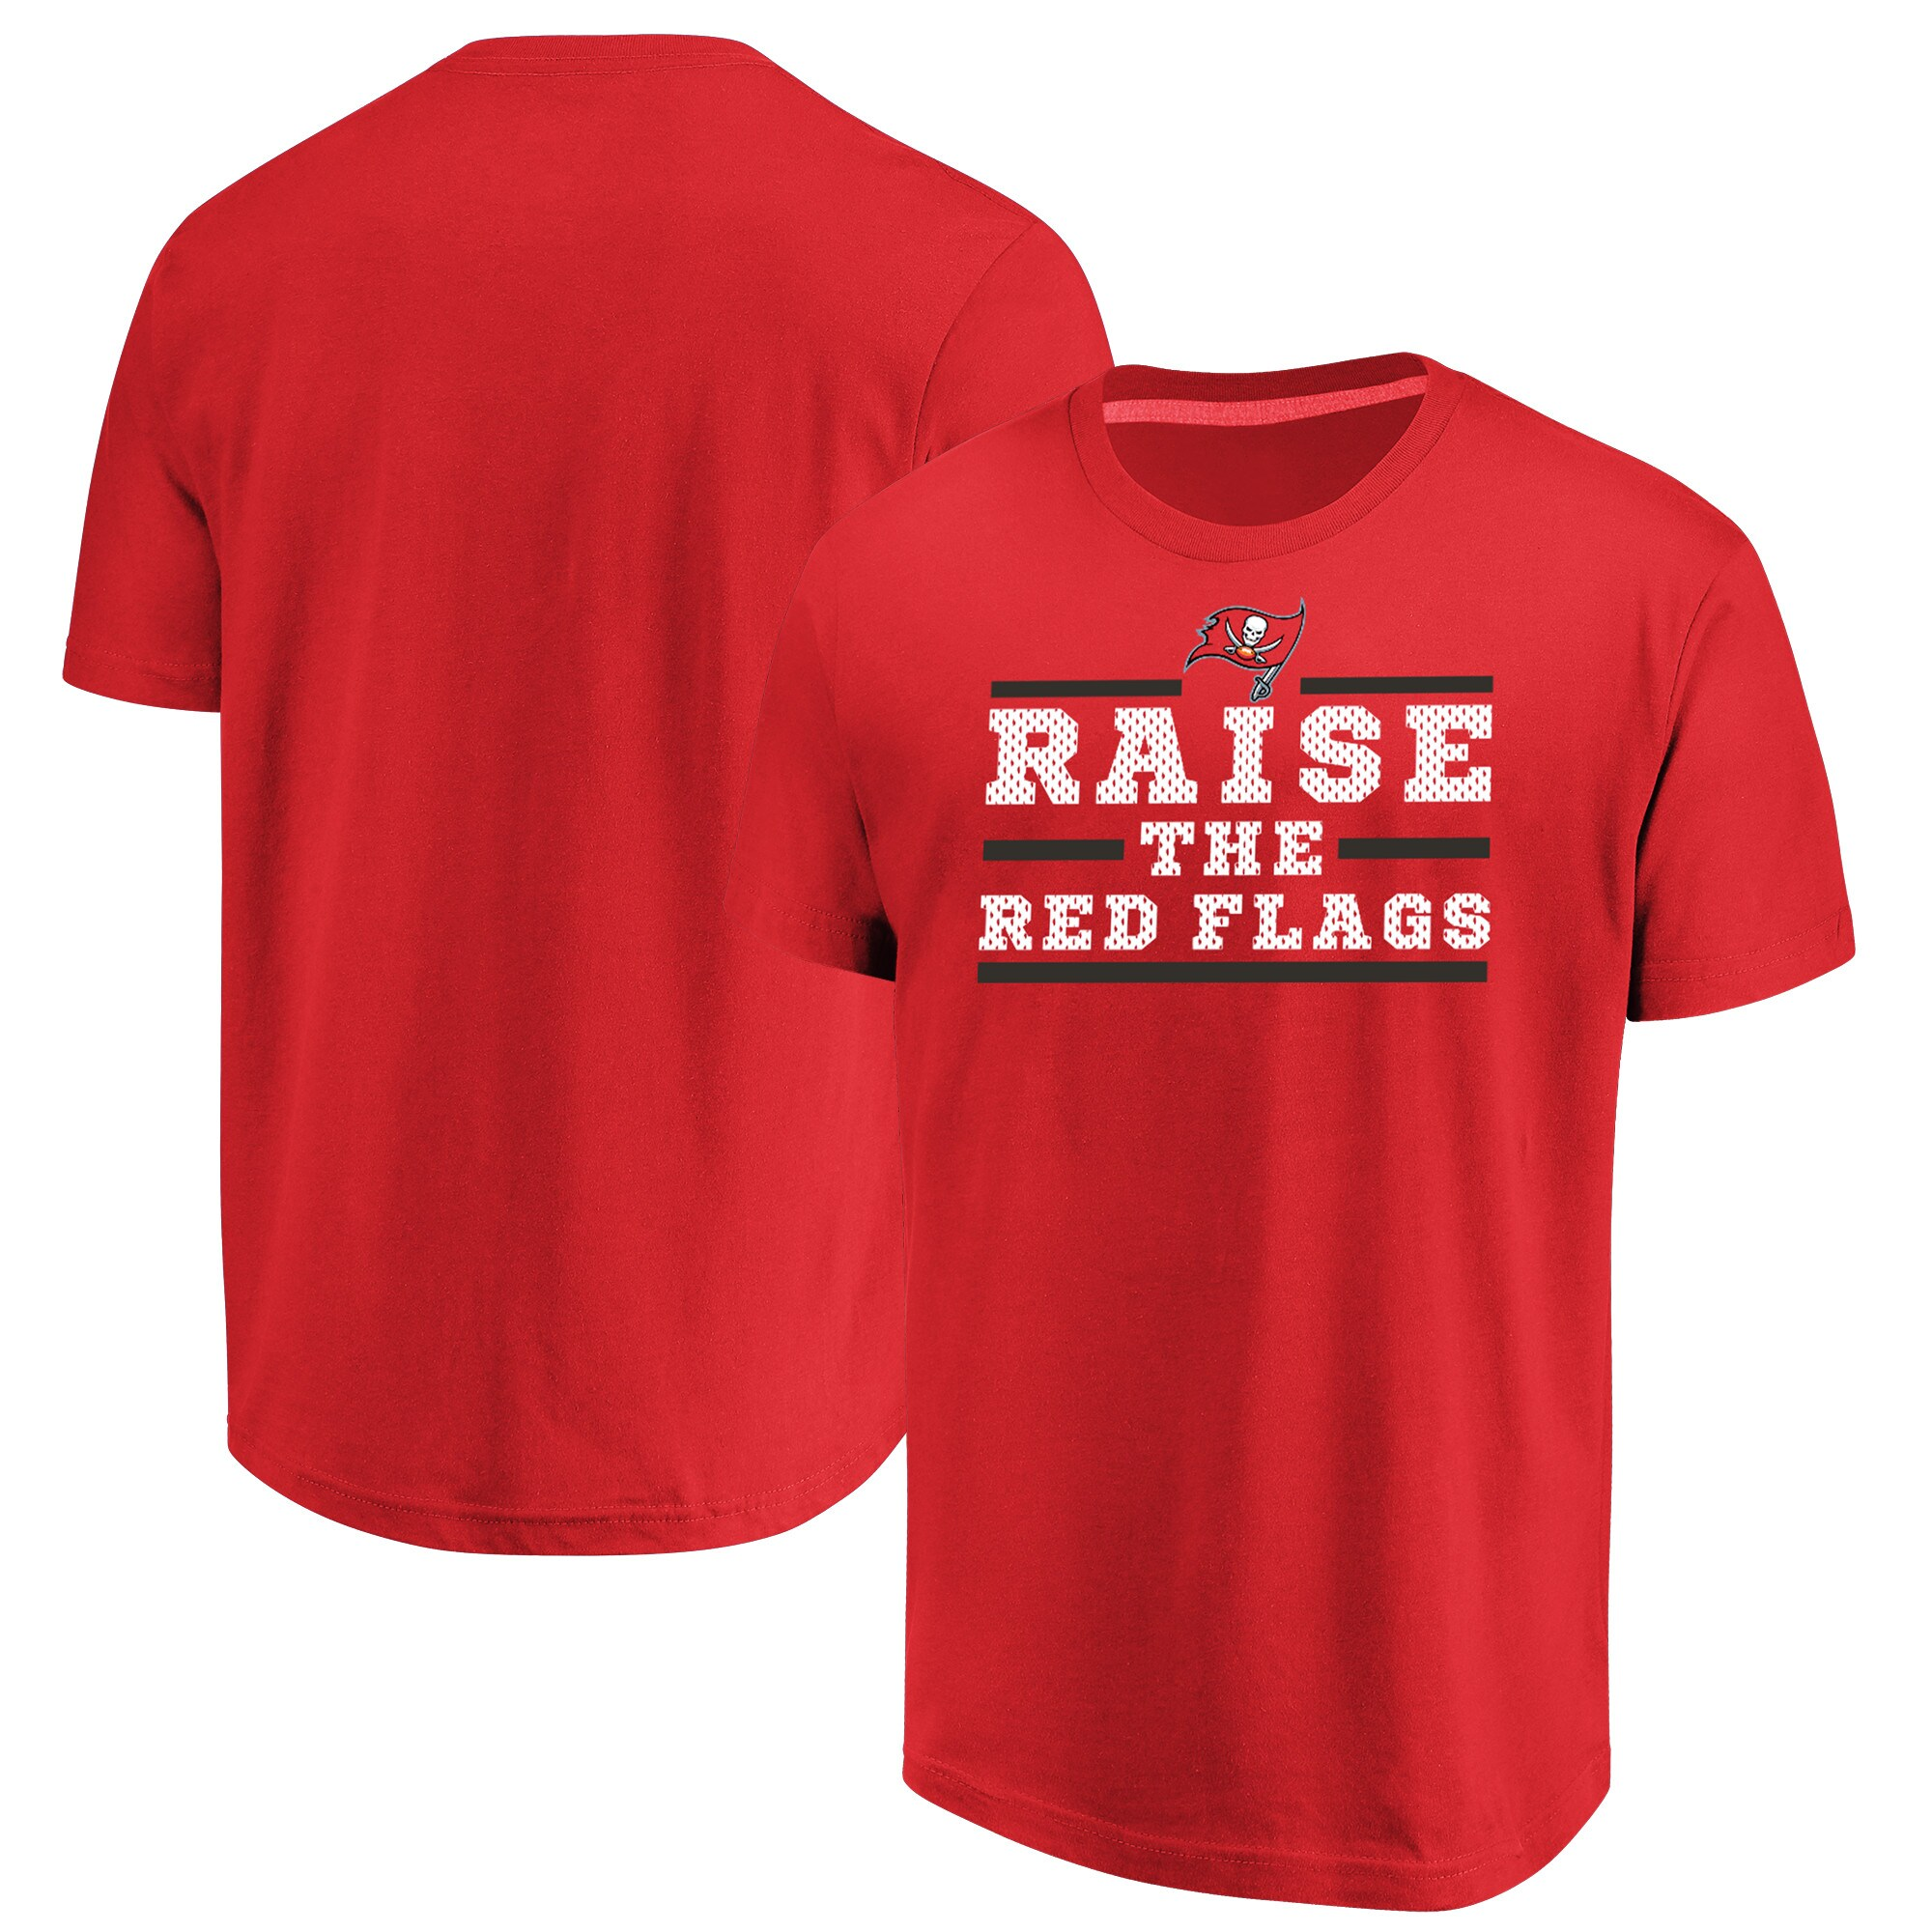 Tampa Bay Buccaneers Majestic Big & Tall Safety Blitz T-Shirt - Red